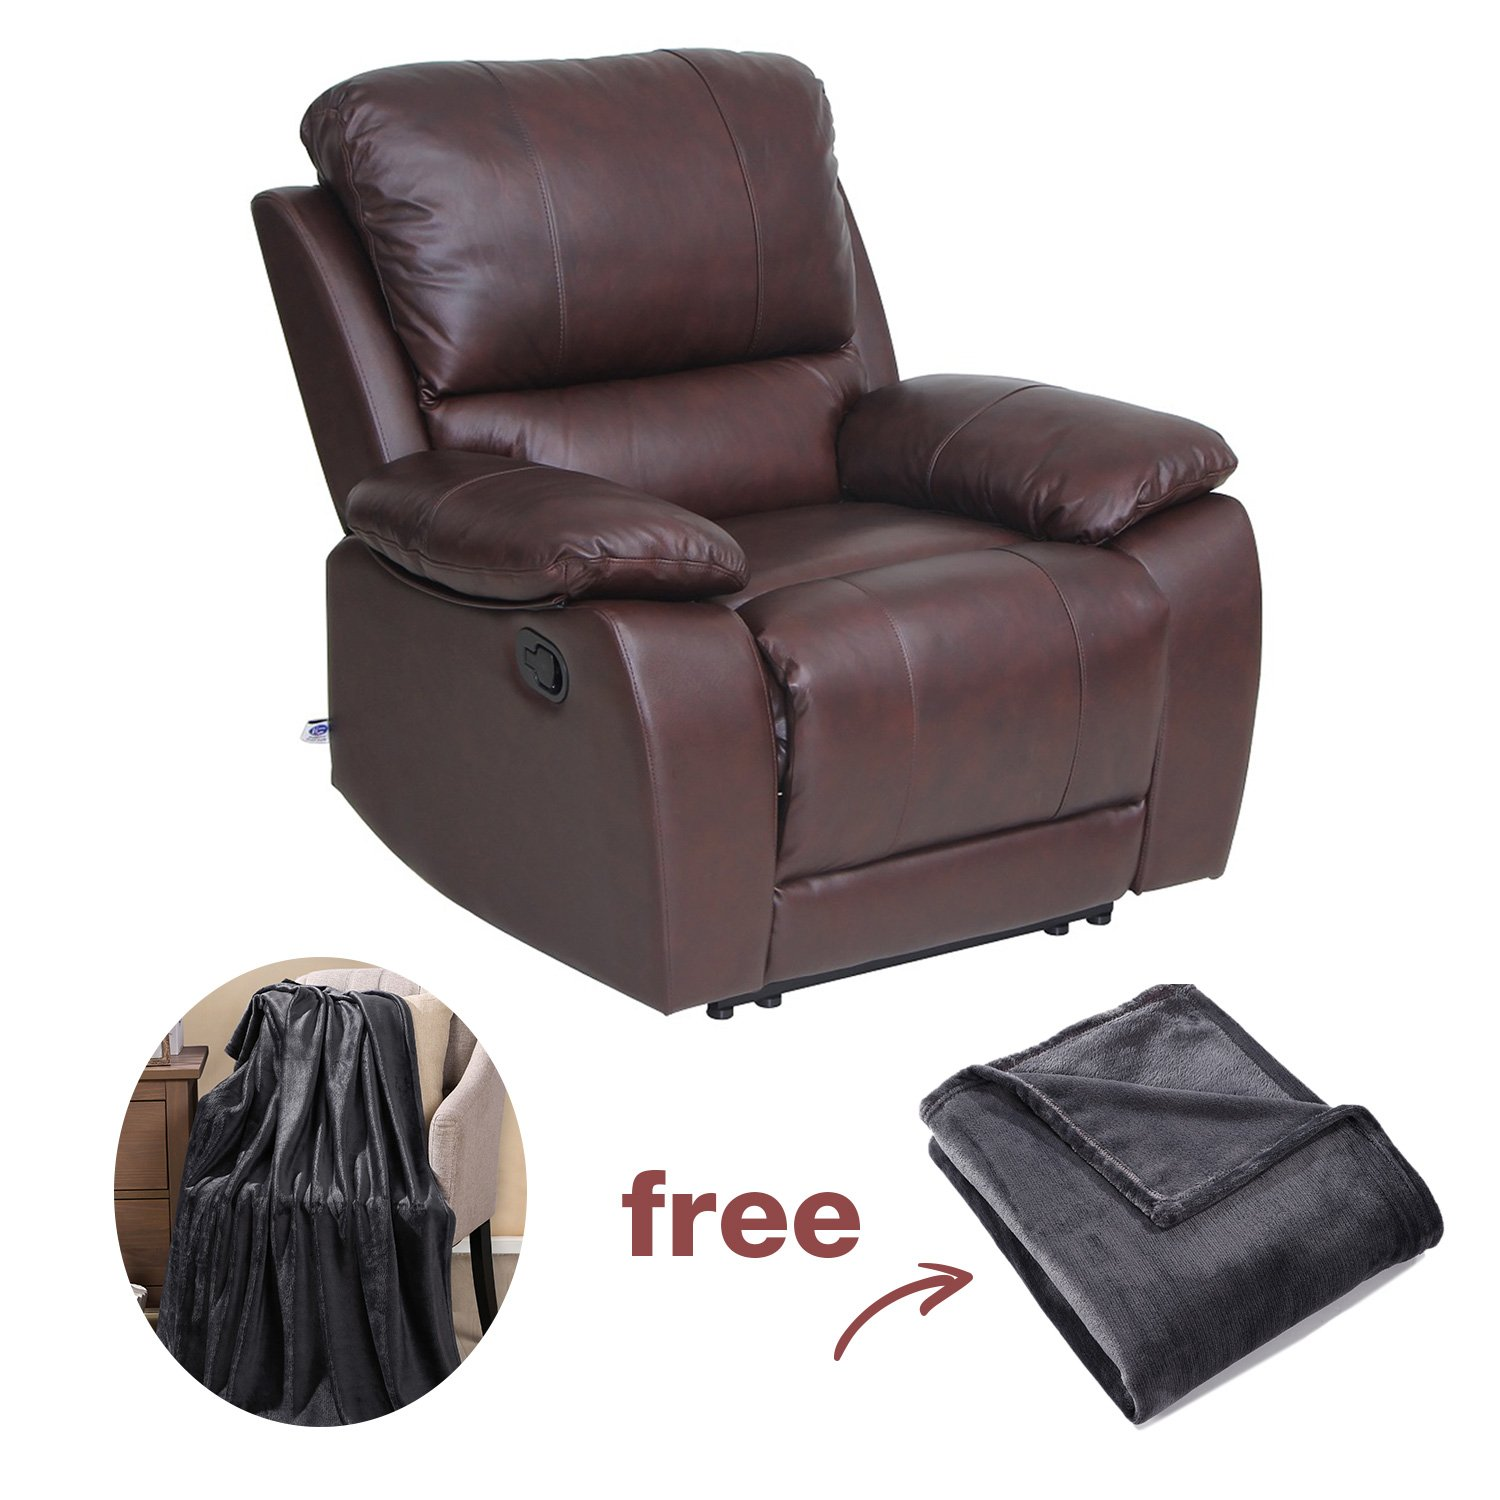 viva home top grain leather recliner chair forums cnet